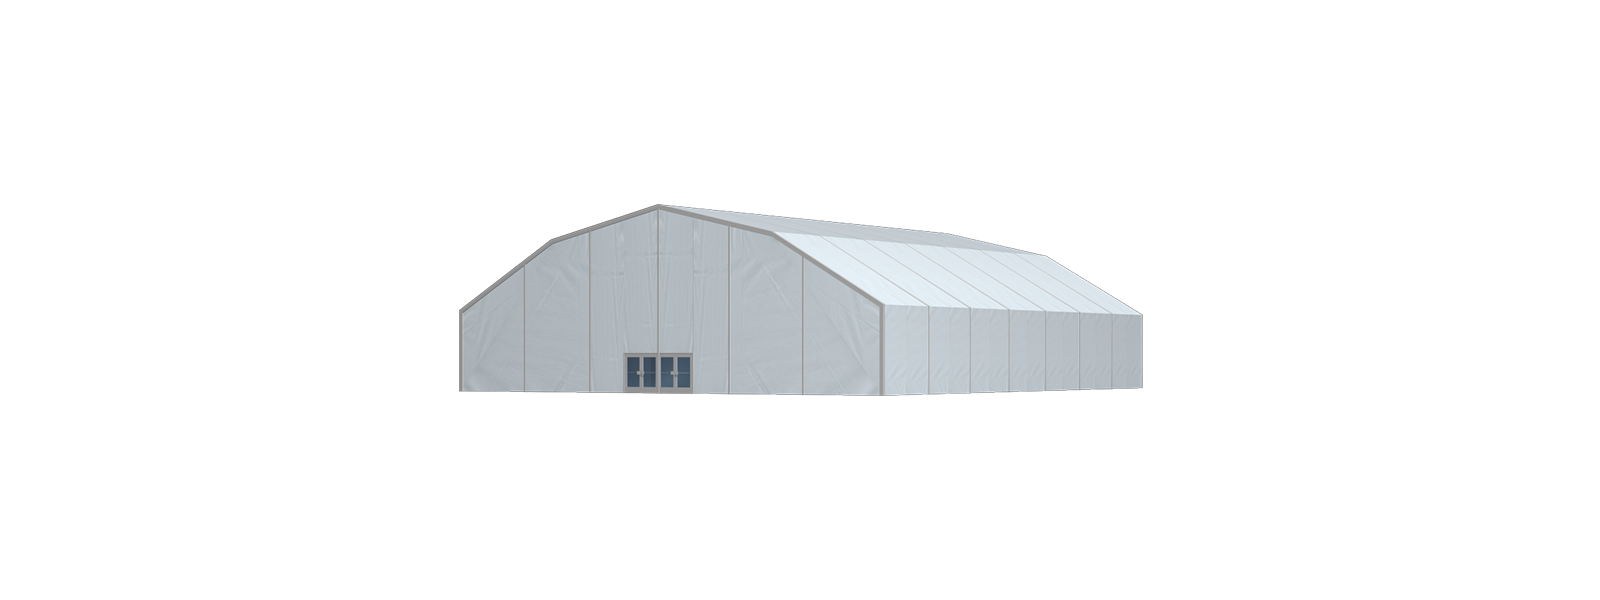 Rendering T-Tents Polygonhalle